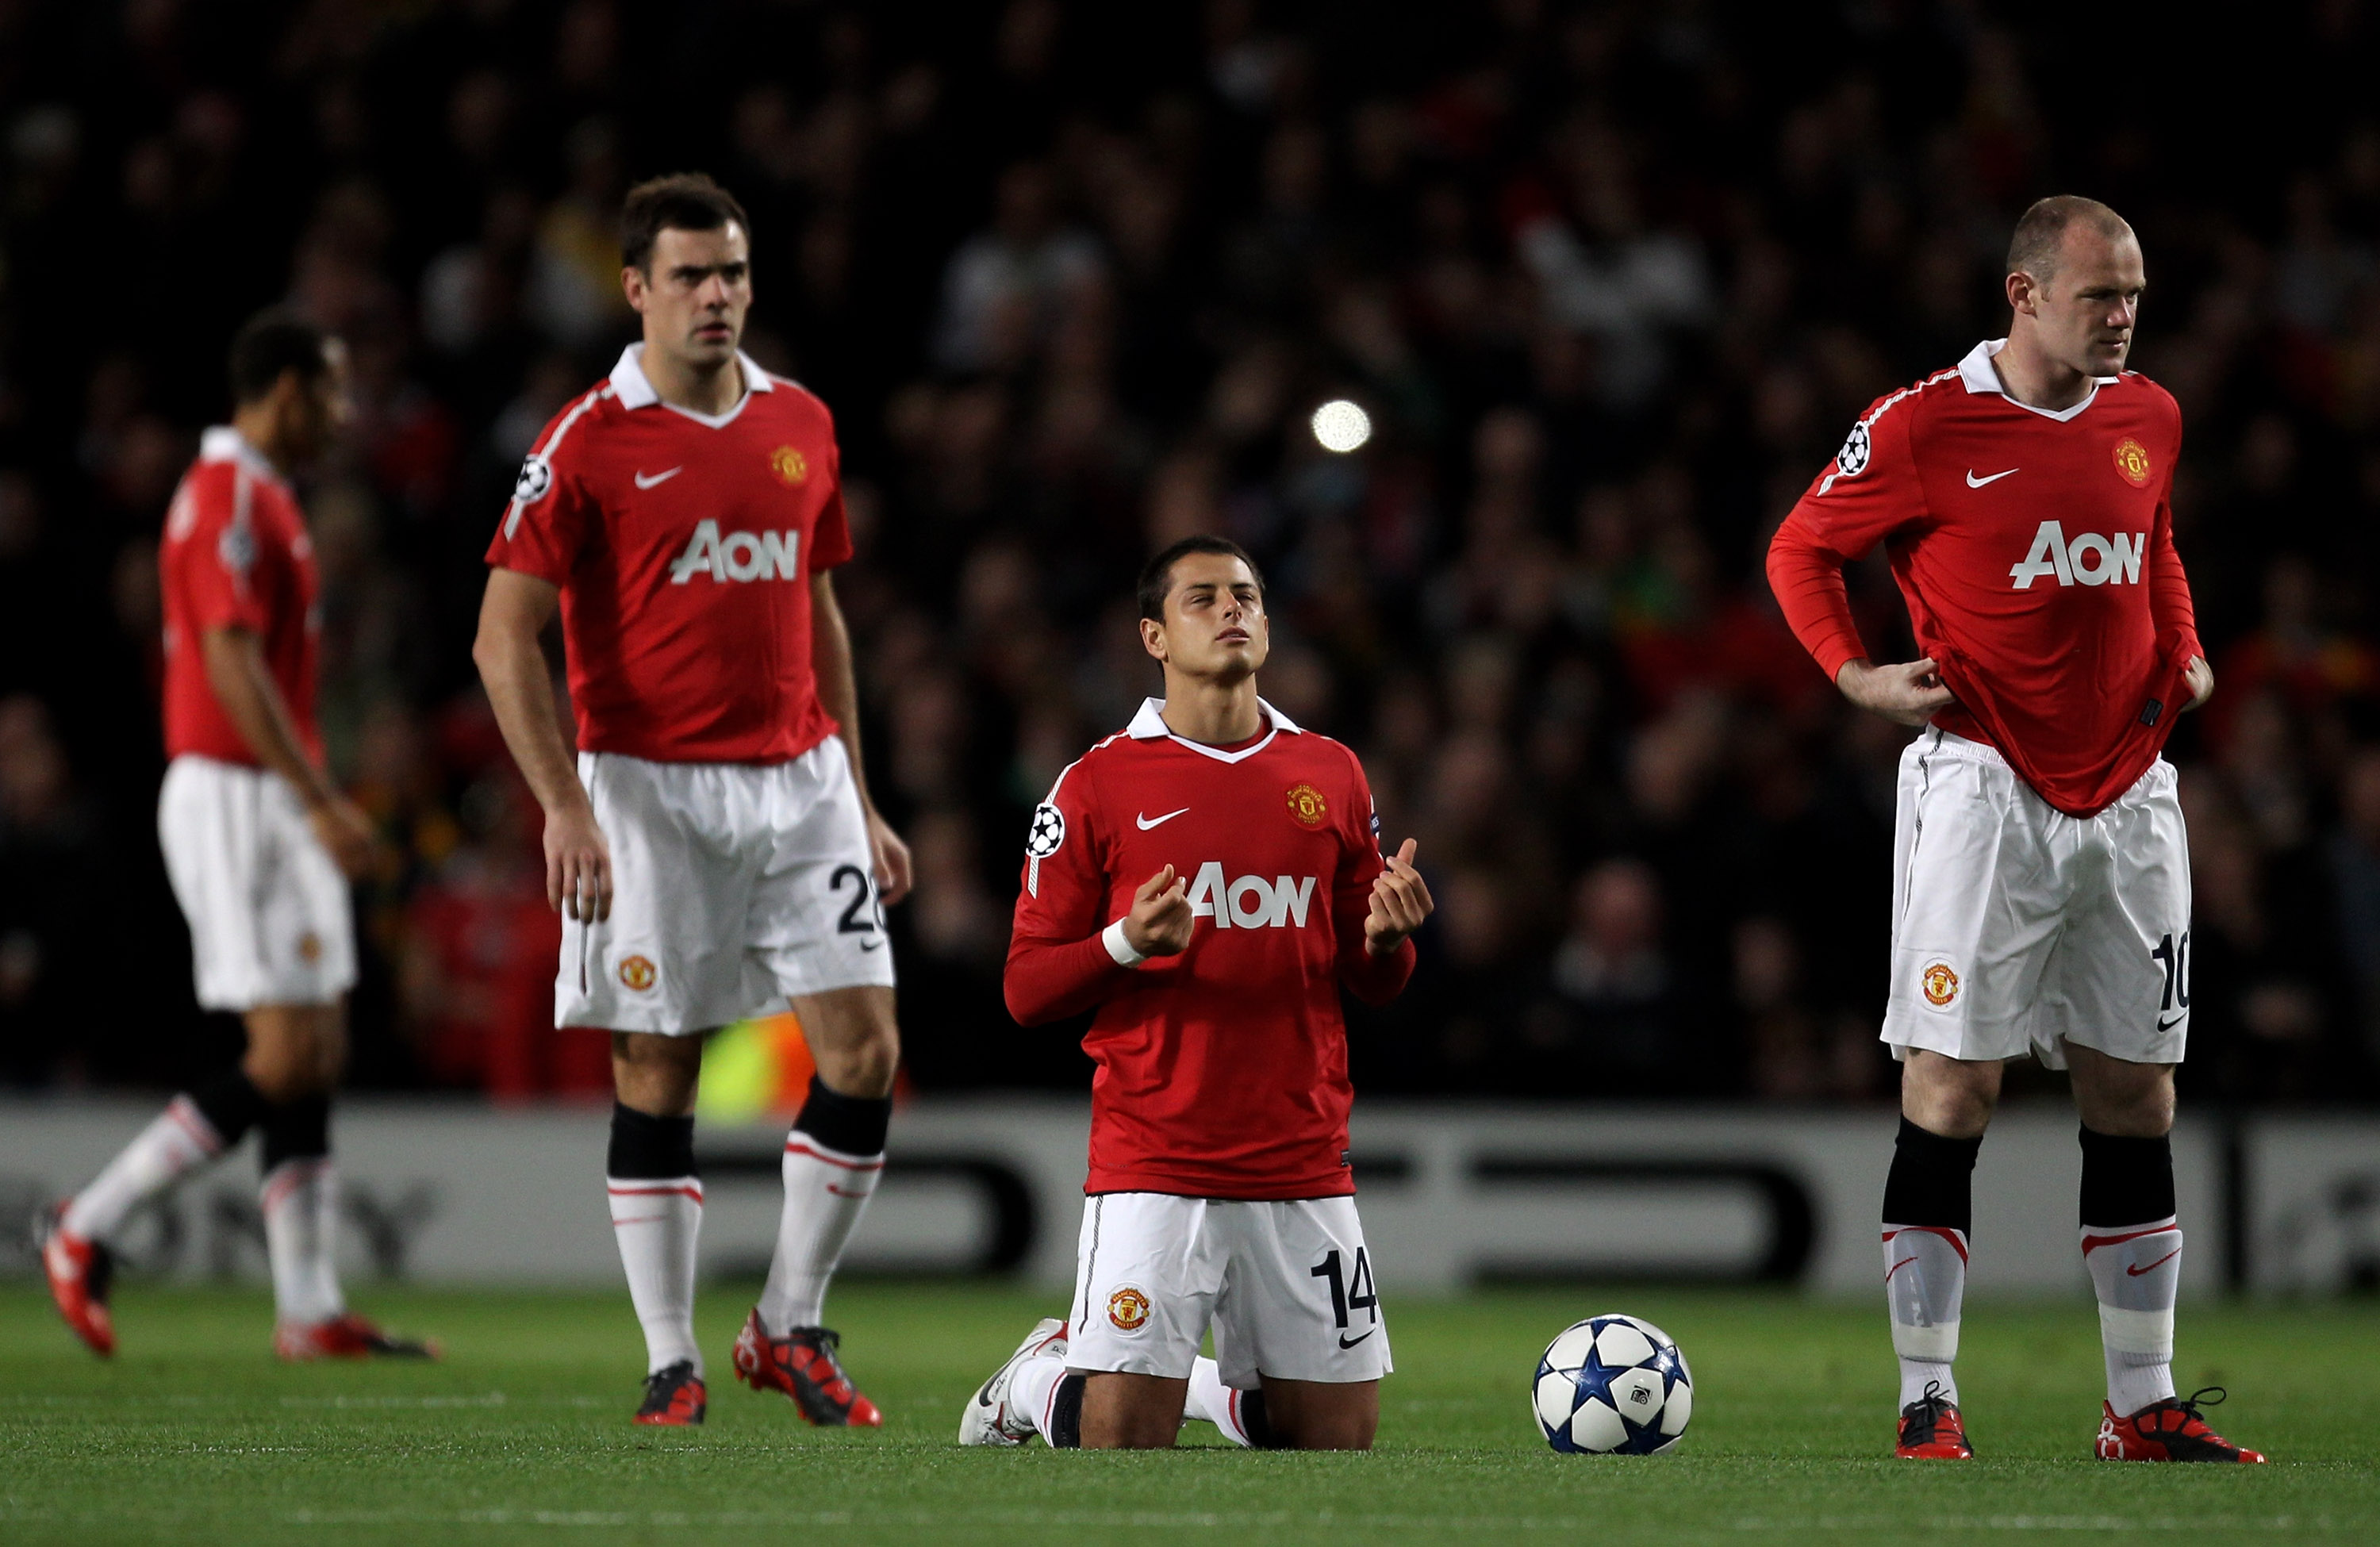 MANCHESTER, ENGLAND - SEPTEMBER 14:  Javier Hernandez of Manchester United says a prayer prior to the UEFA Champions League Group C match between Manchester United and Rangers at Old Trafford on September 14, 2010 in Manchester, England.  (Photo by Alex L